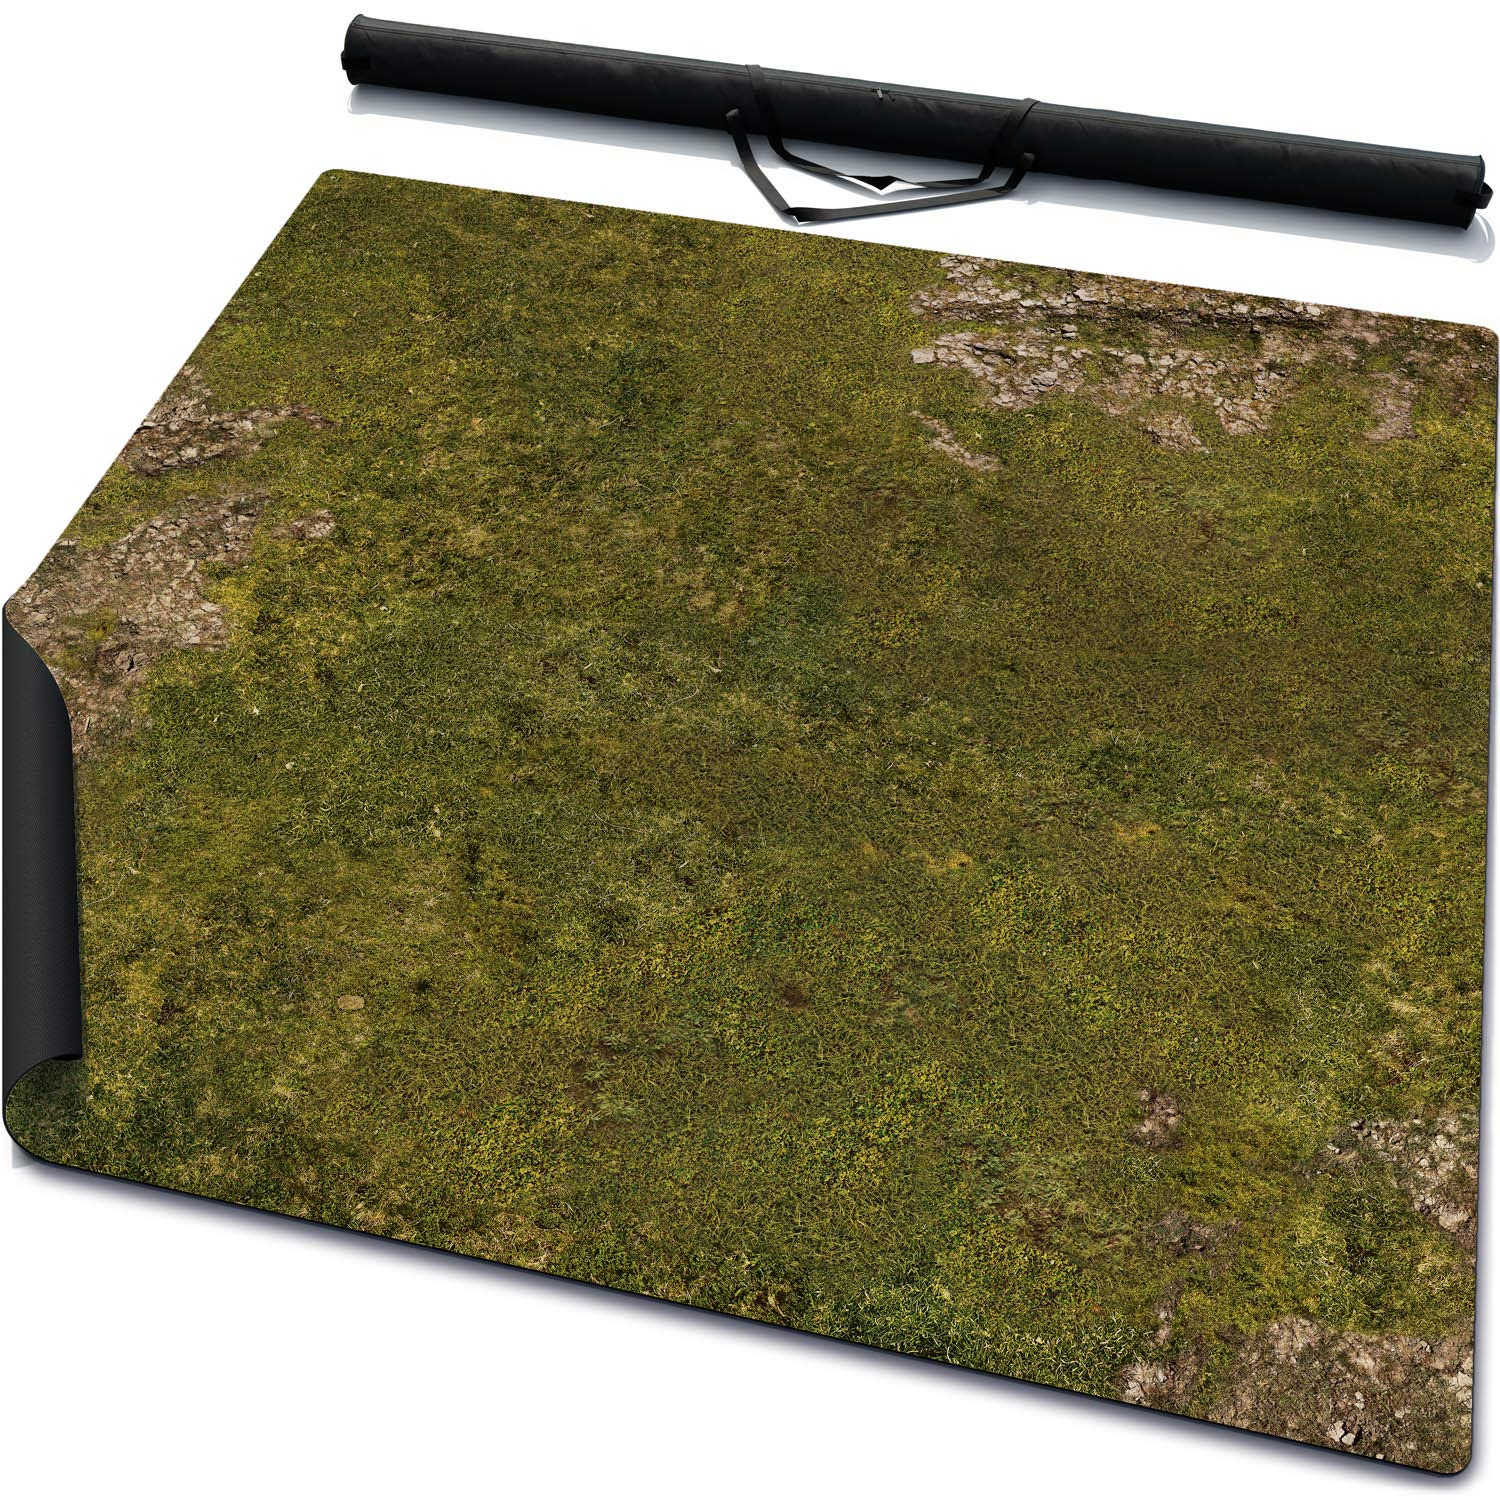 4' x 4' Rubber Battle Mat: Homeland + Bag